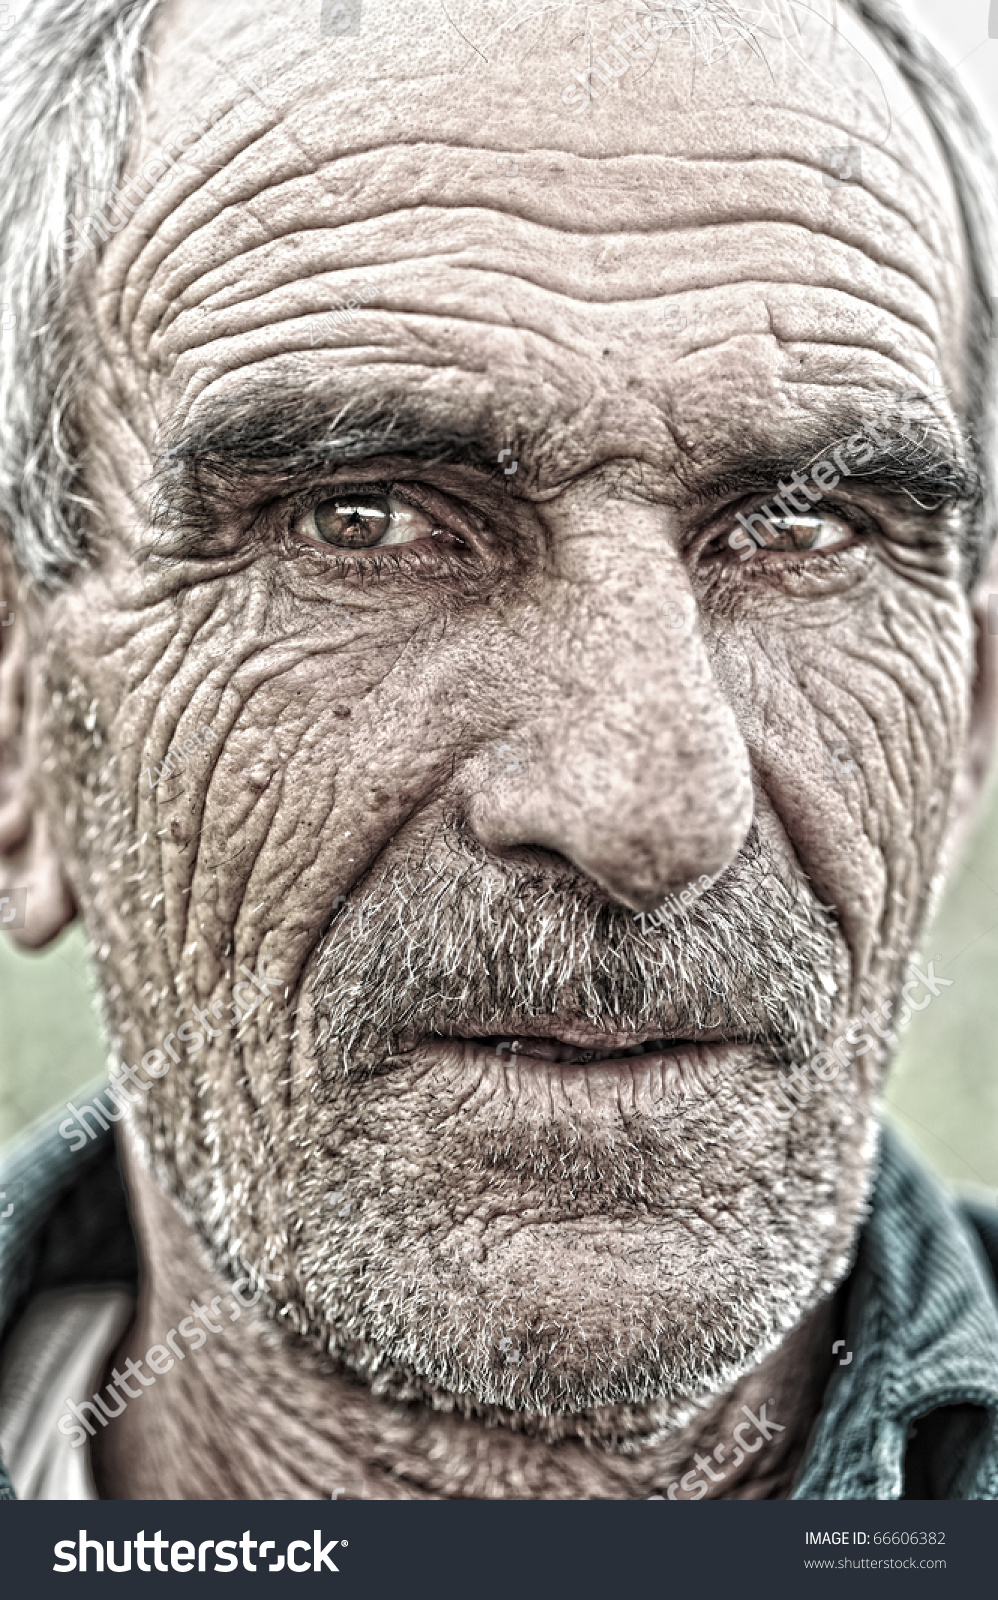 EverythingHealth: Skin Conditions With Aging |Wrinkly Skin